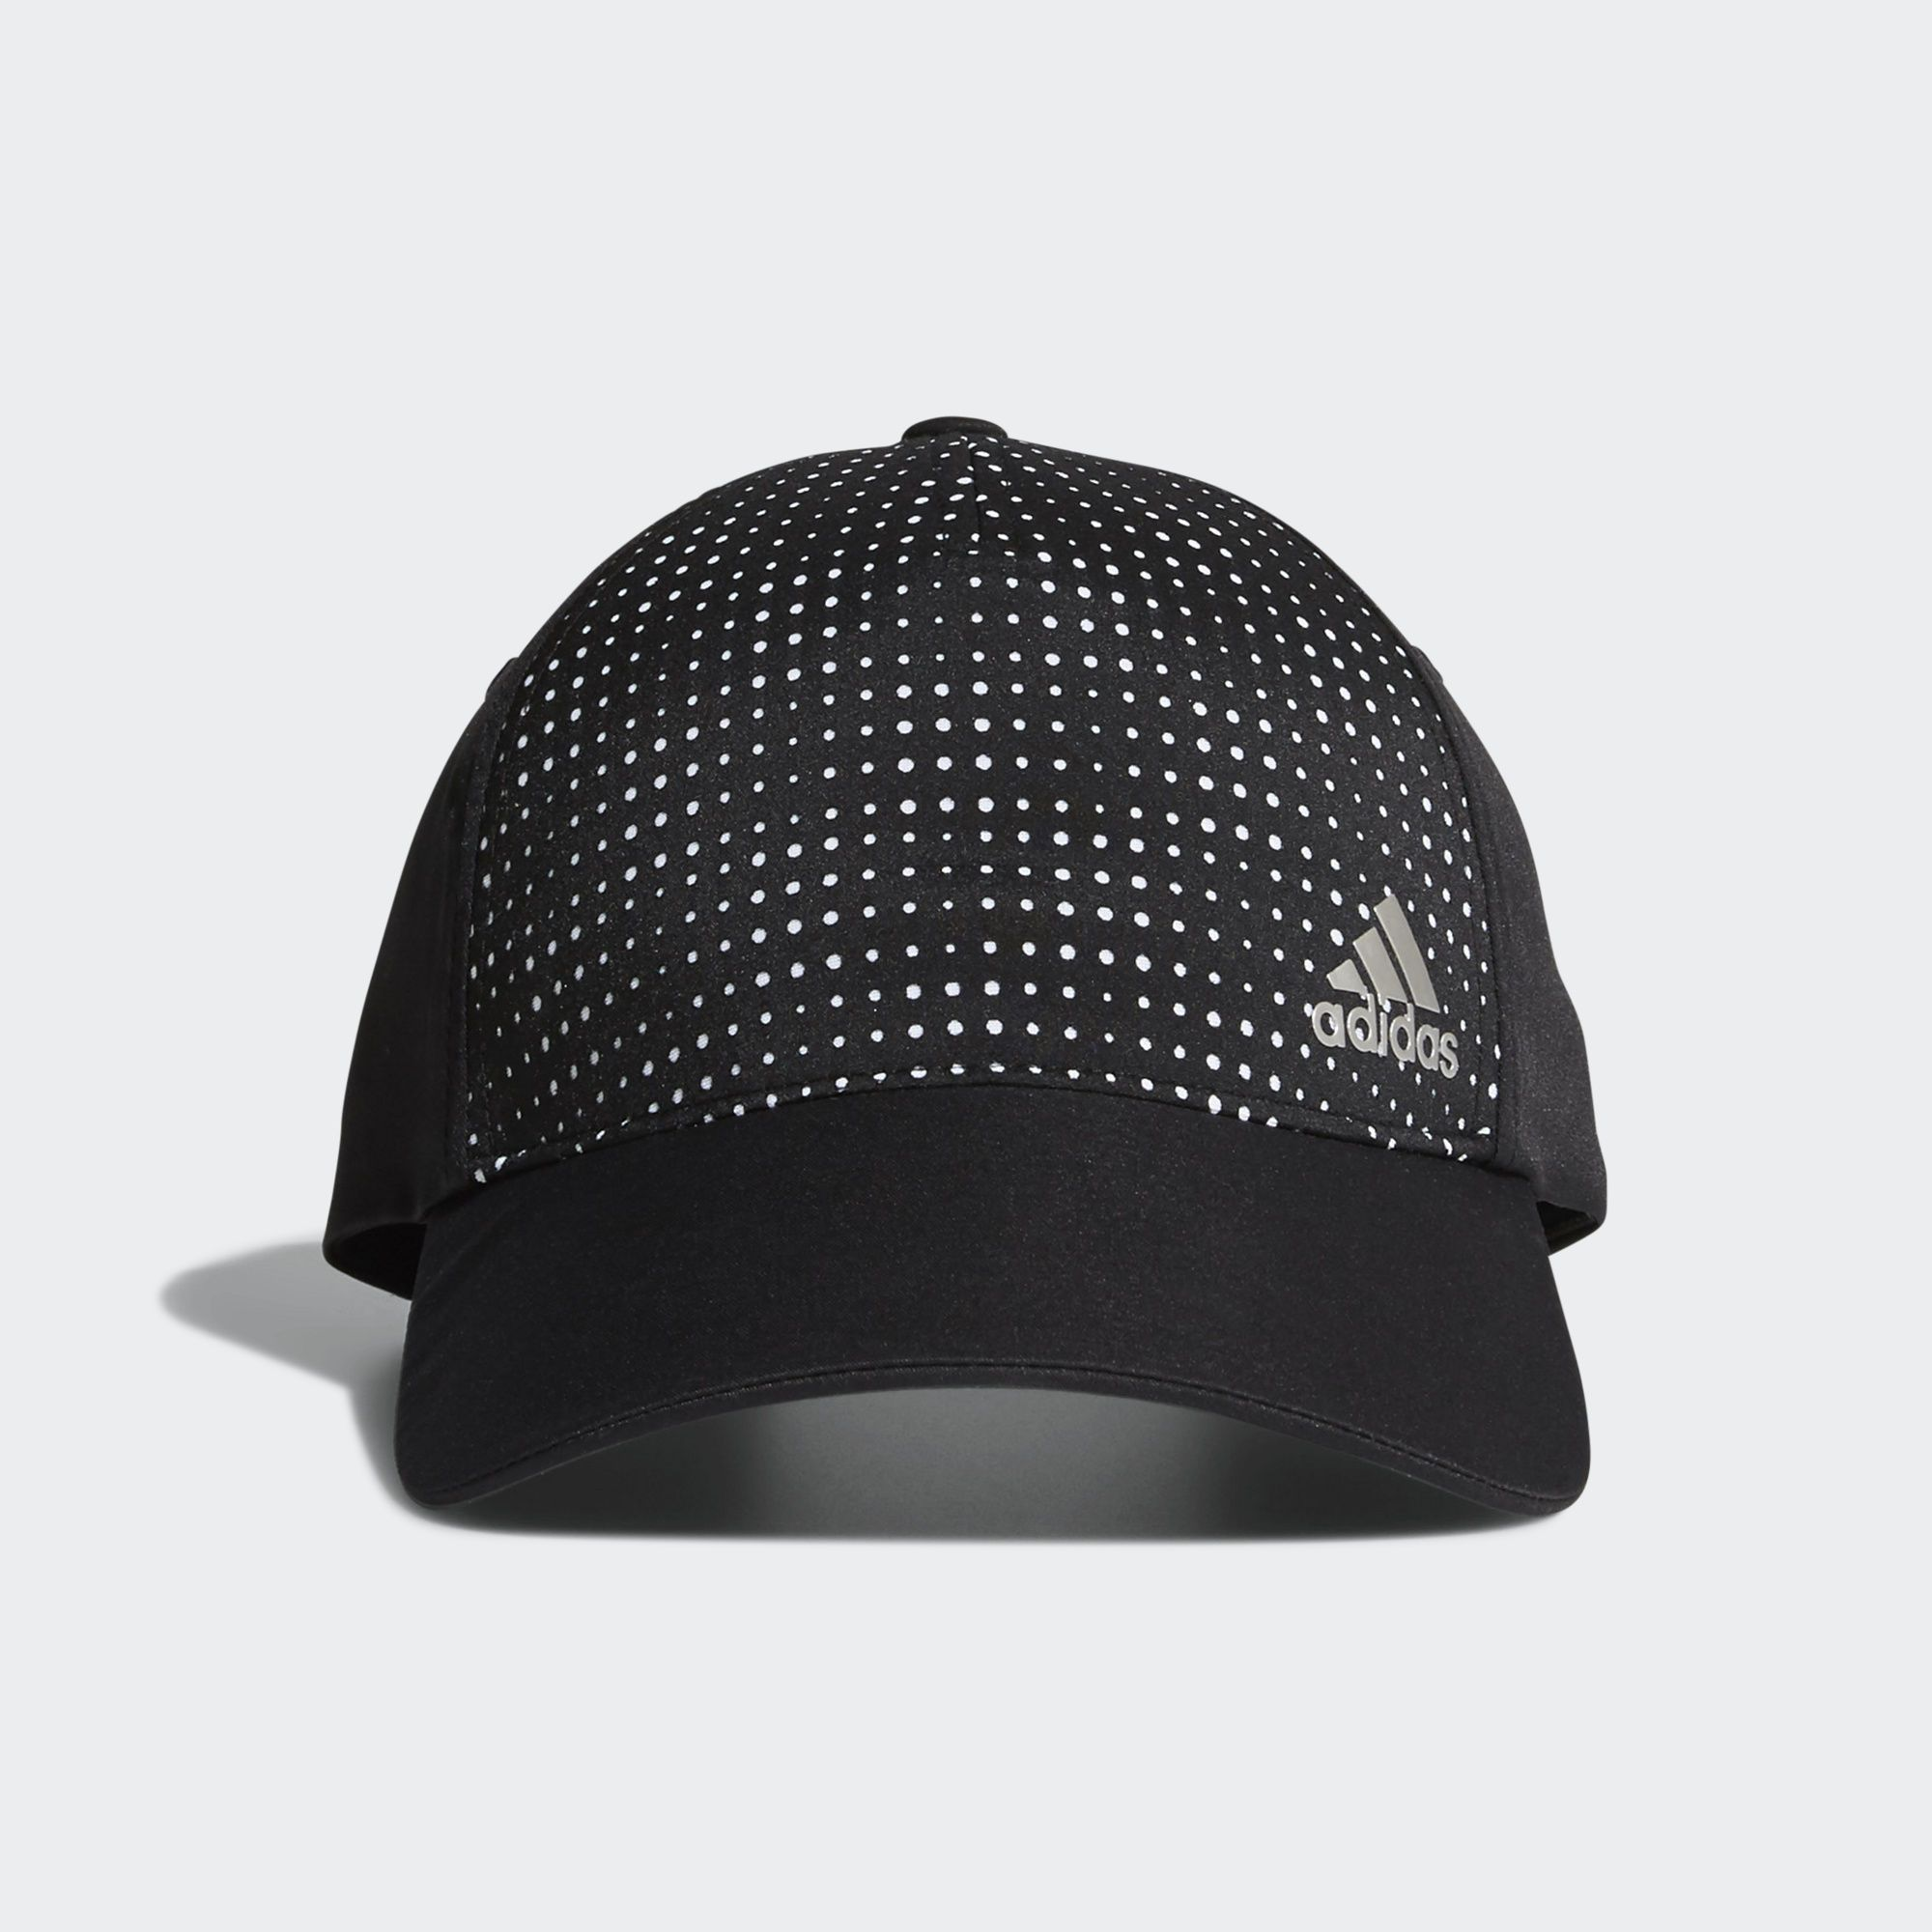 This women s golf hat features a moisture-wicking sweatband to help keep  you dry throughout your round. The adjustable back closure provides a  custom fit. 33f71c2b473